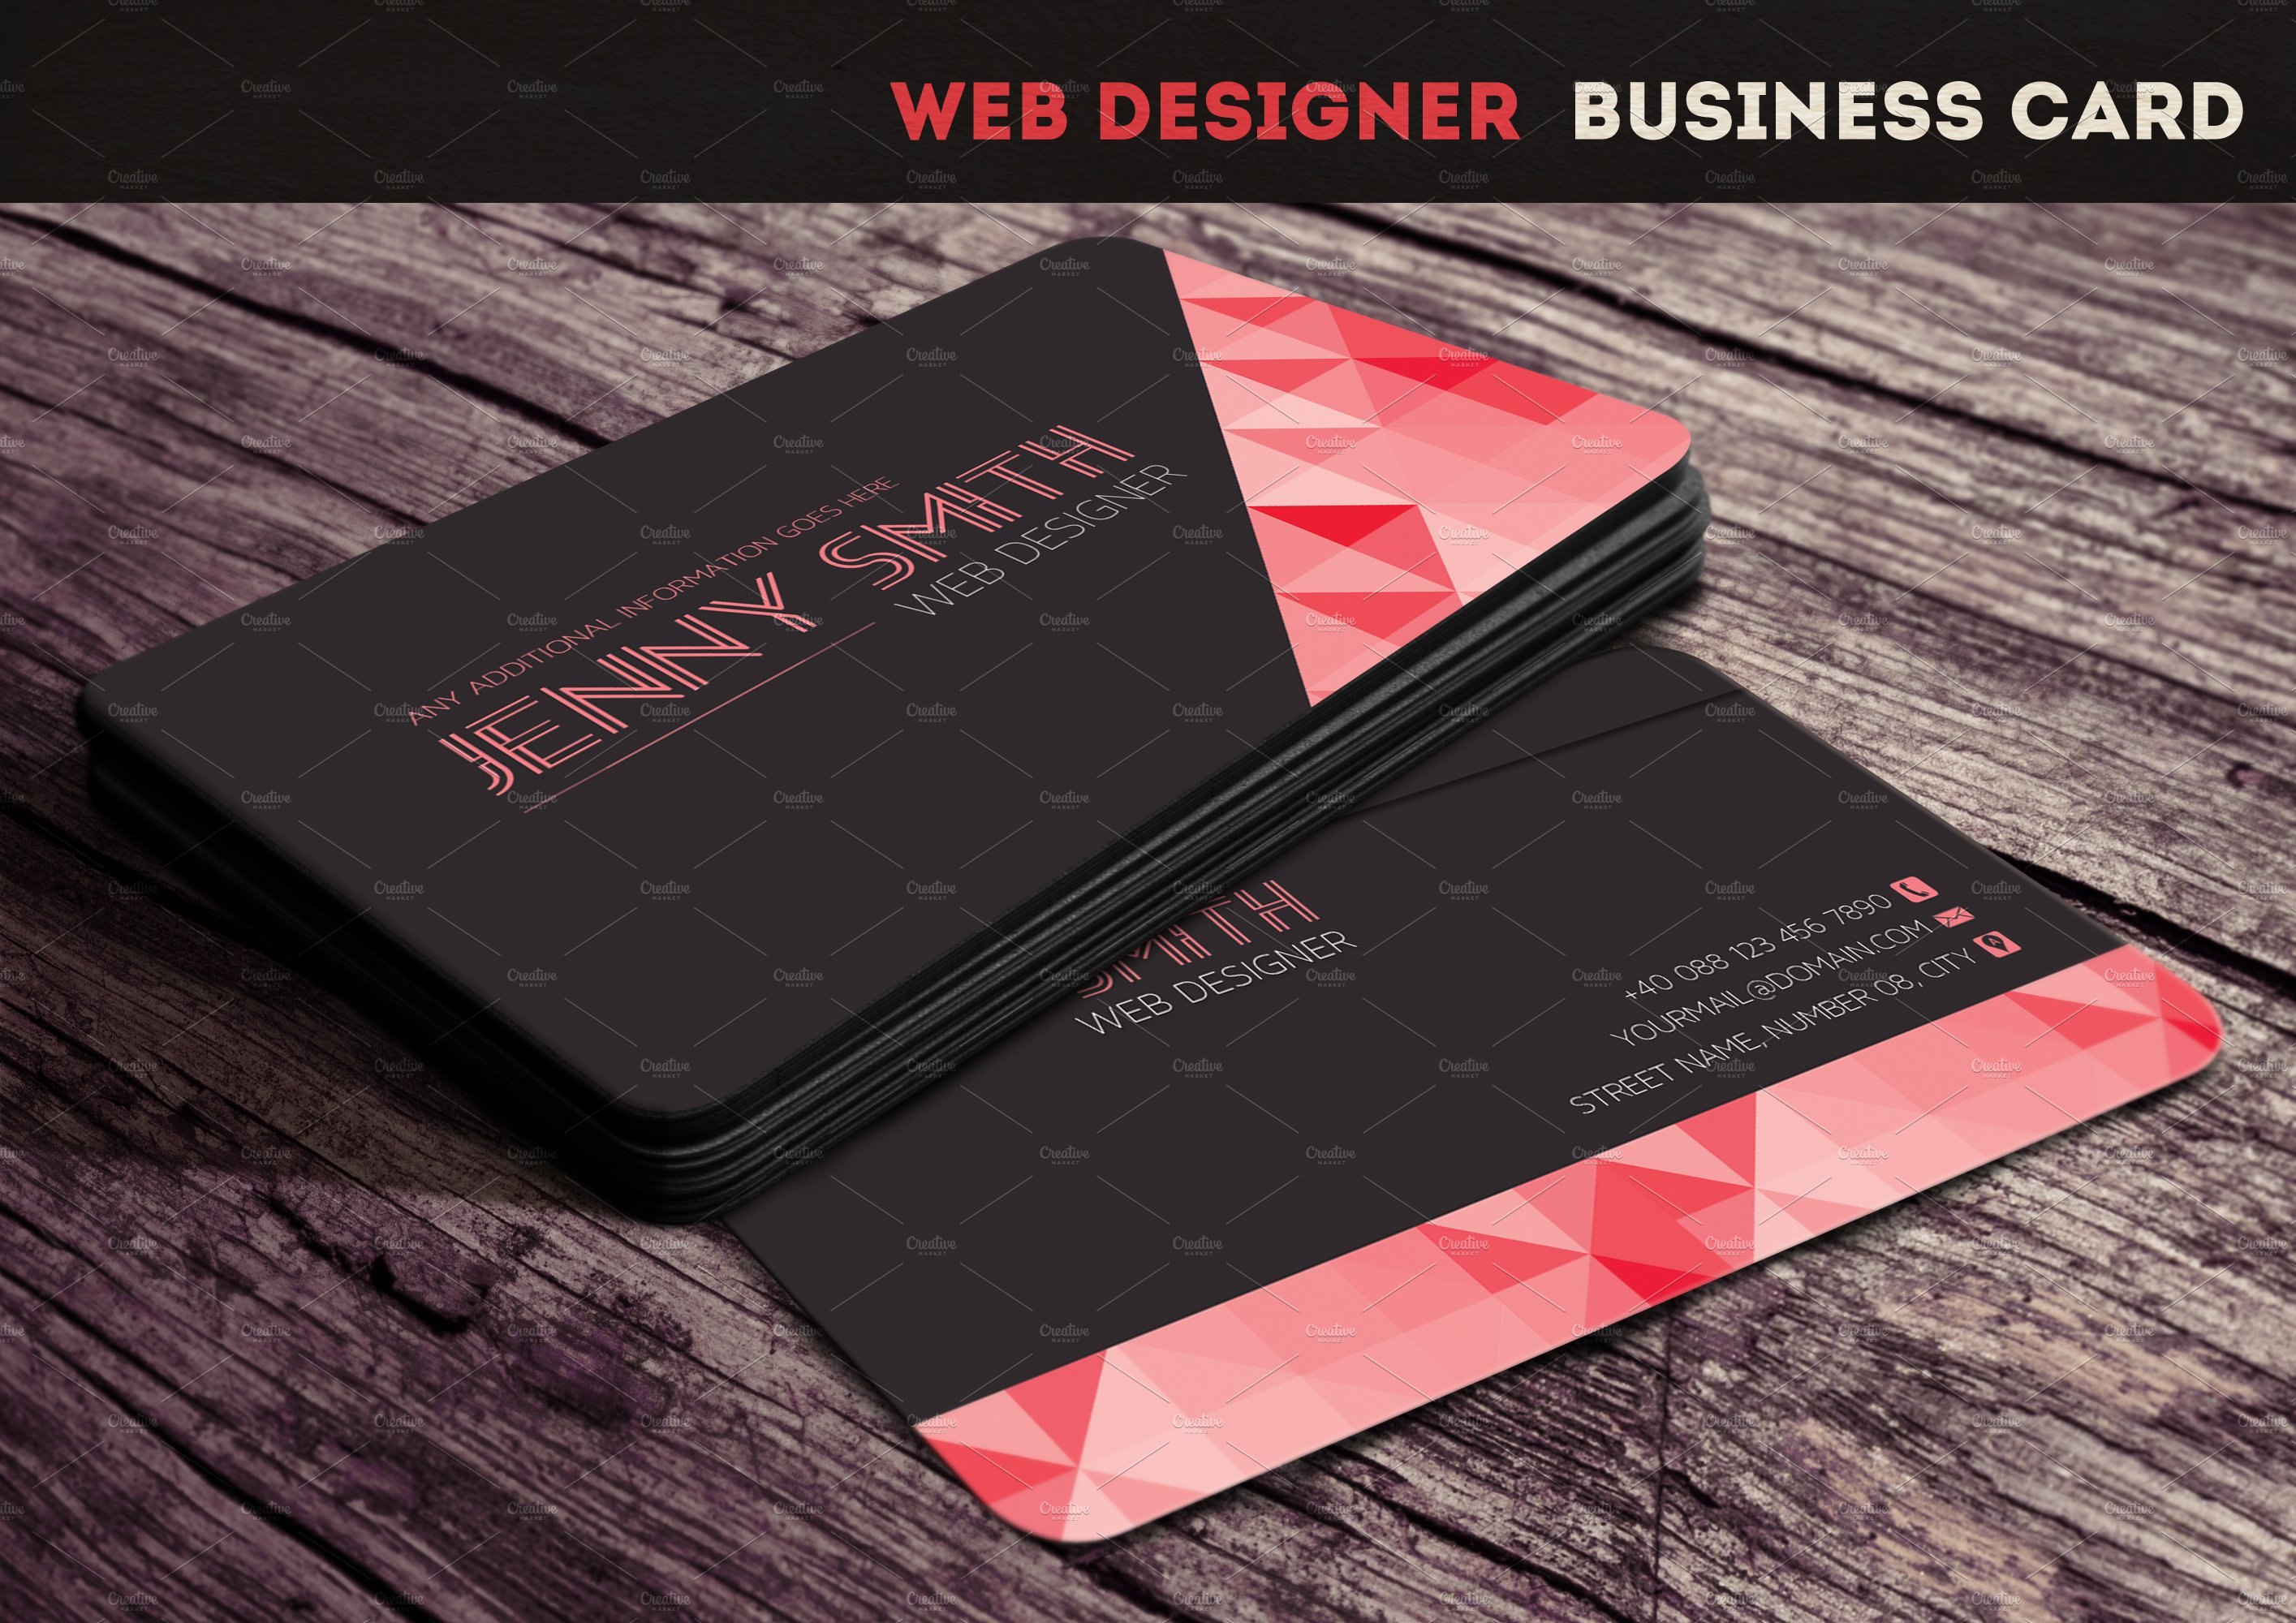 Web designer business card business card templates creative market reheart Images